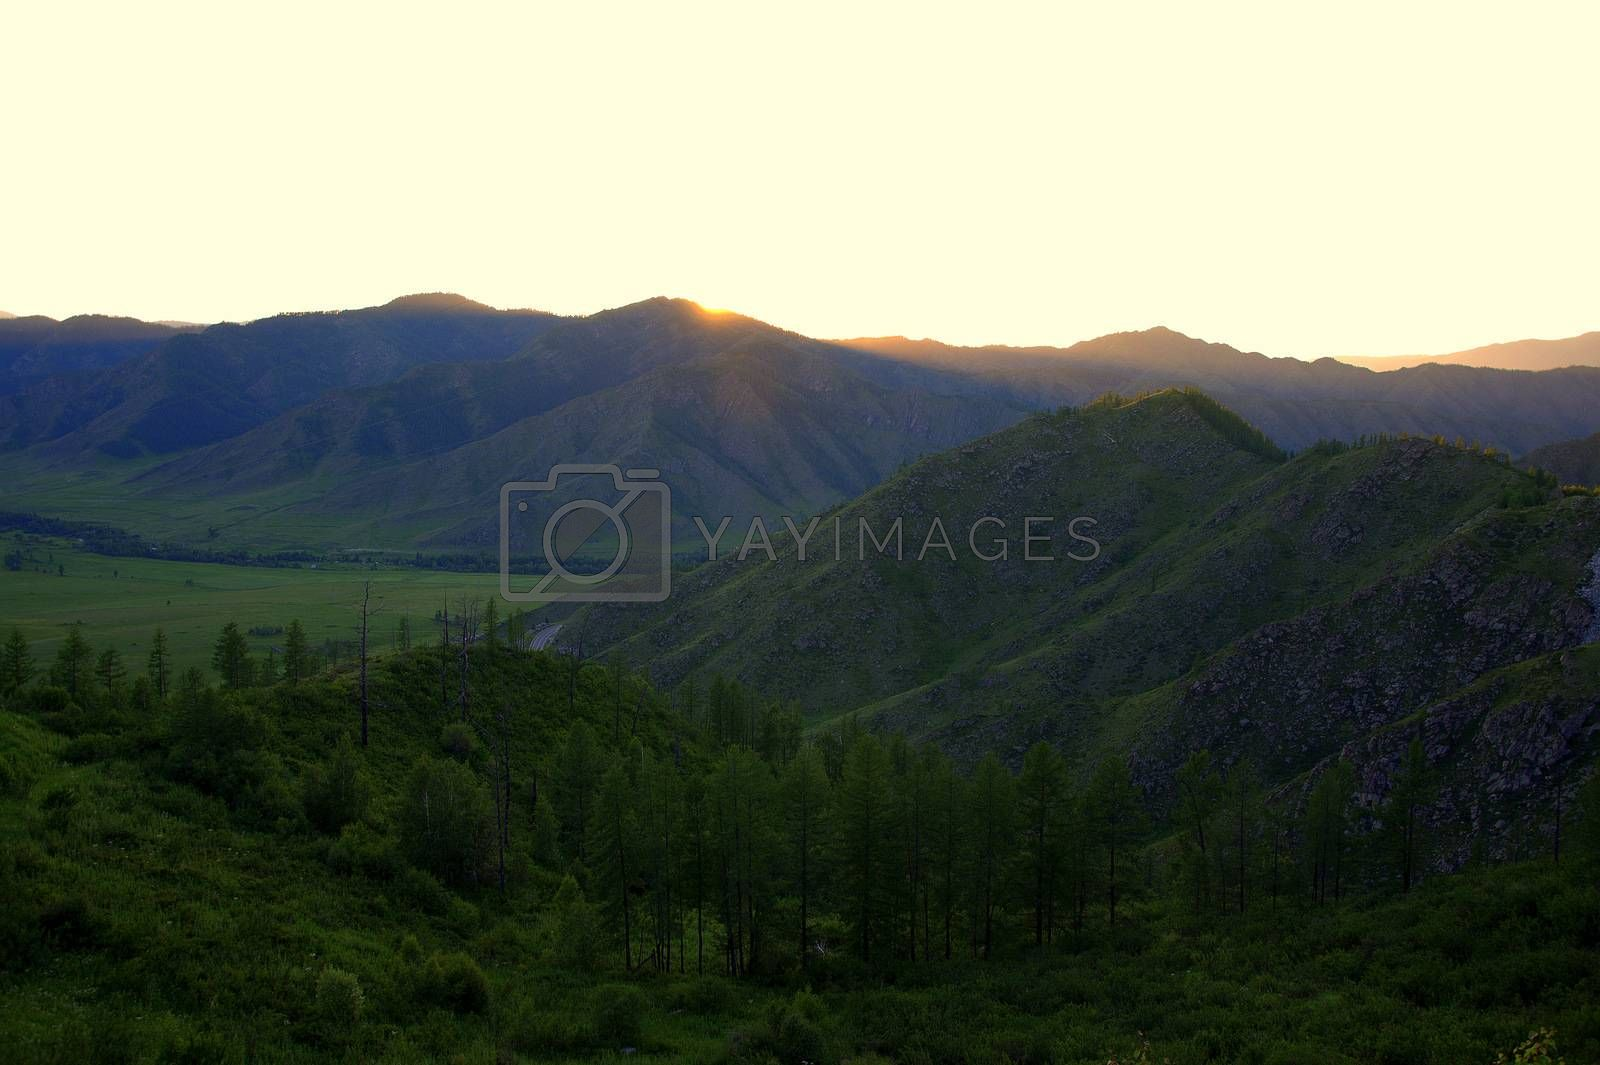 The evening landscape, the setting sun hid behind high mountains, illuminating the picturesque valley with its rays. Altai, Siberia, Russia.